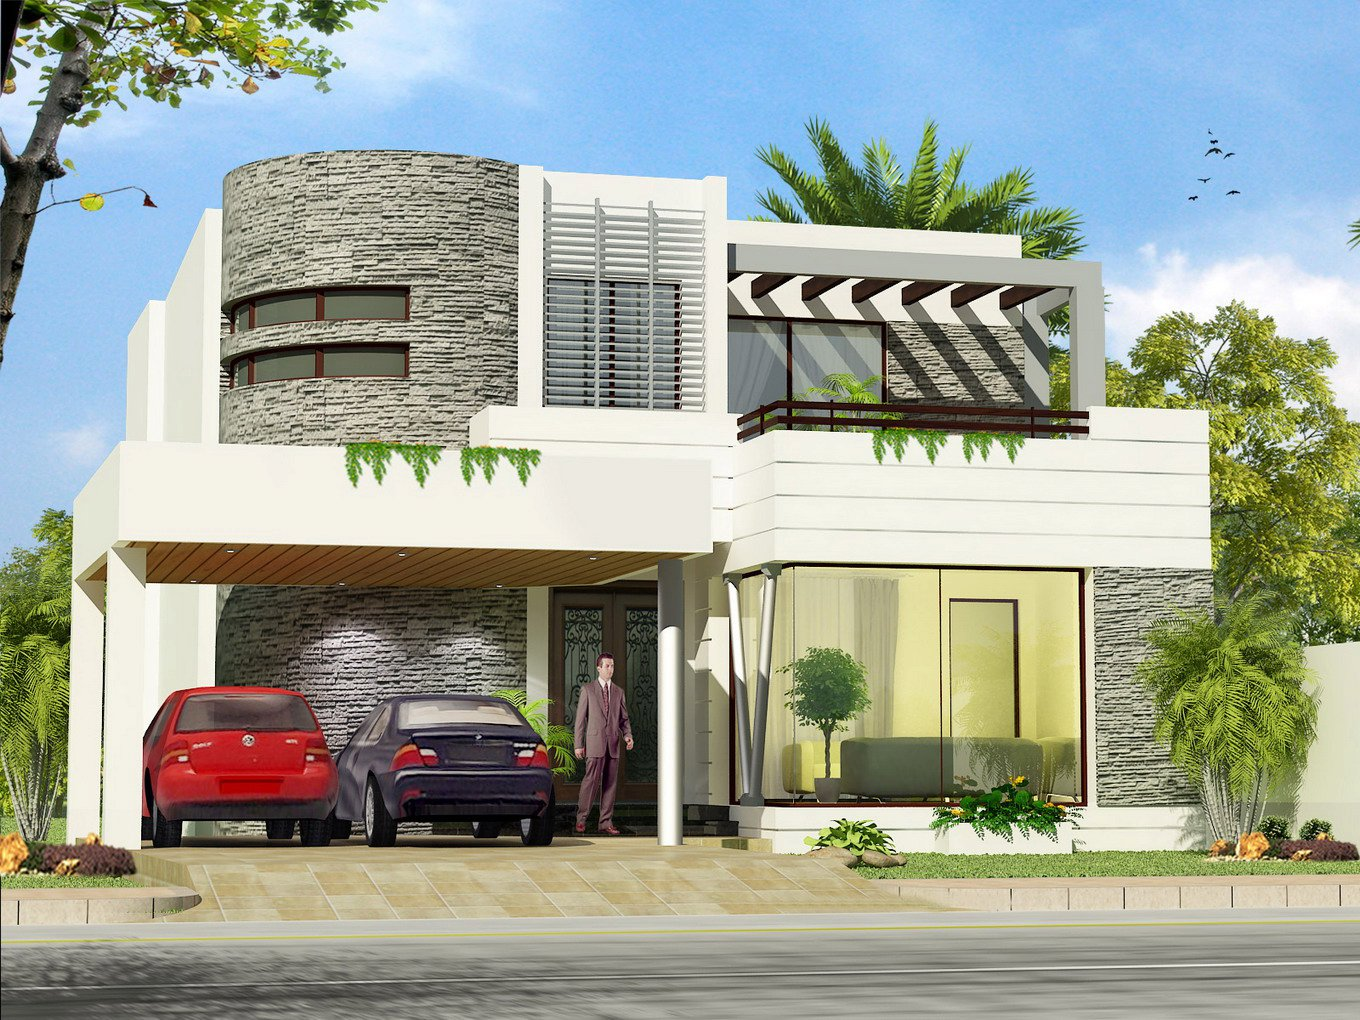 designs homes. House Plans Kitchen Design Home Decor Designs Shipping Container Homes  New Joy Studio Gallery Photo